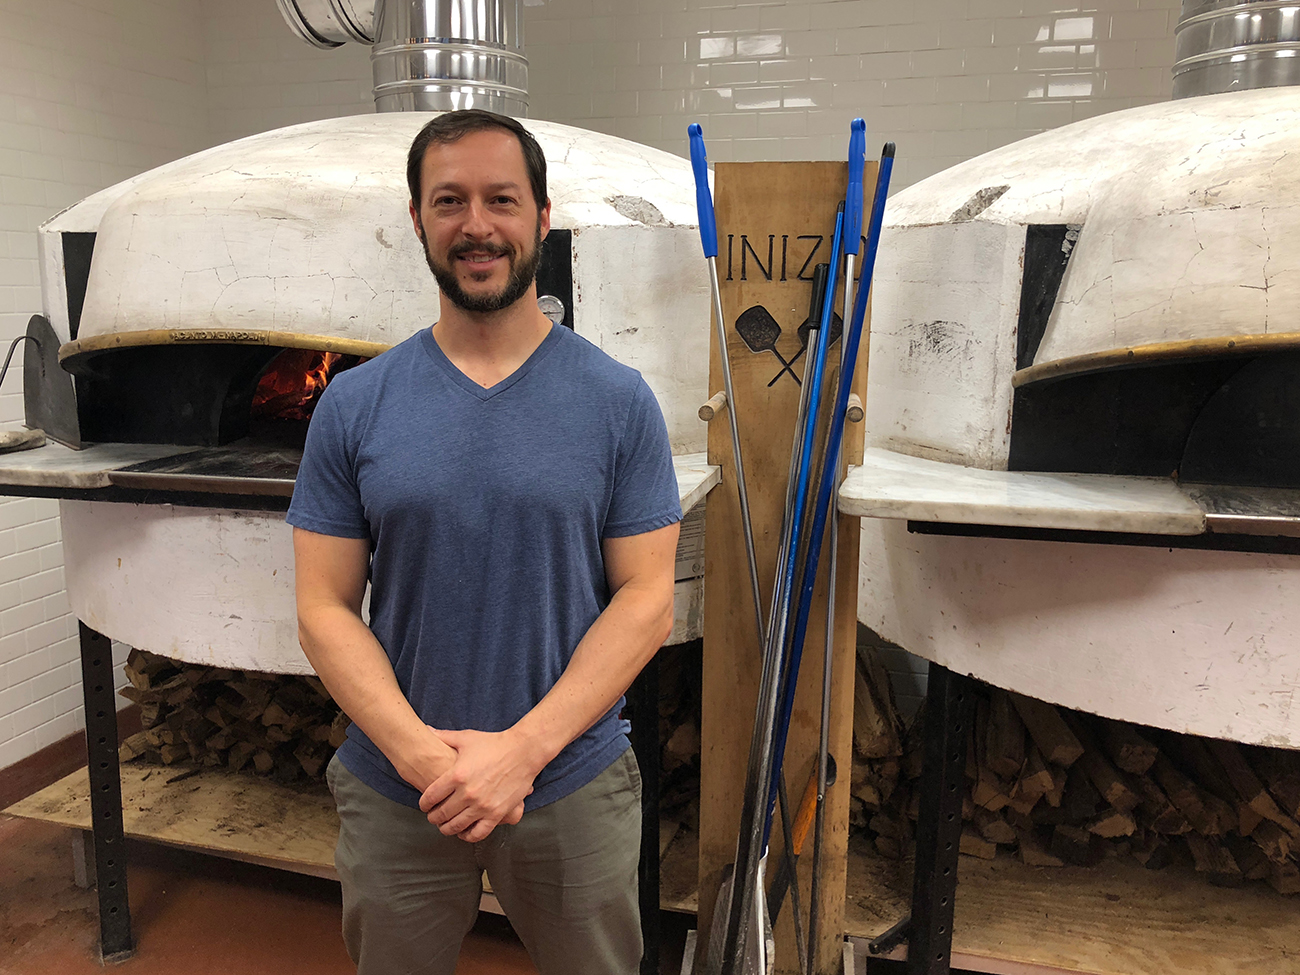 How I Work: Grant Arons, owner of Inizio Pizzeria